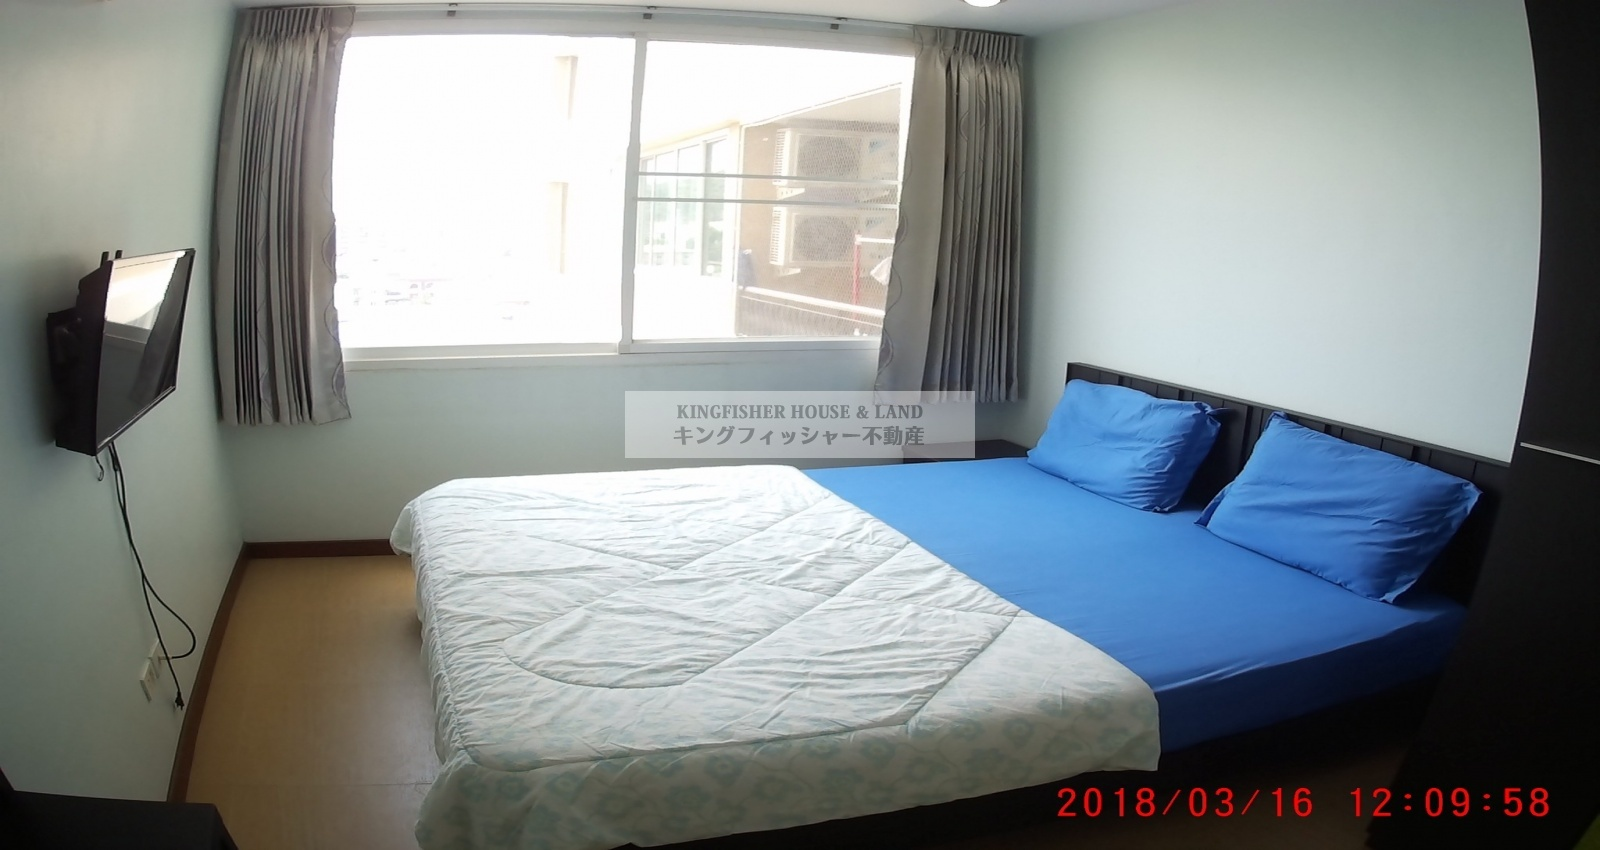 1 Bedrooms, Condominium, For Rent, 1 Bathrooms, Listing ID 1235, Sriracha, Thailand, 20110,